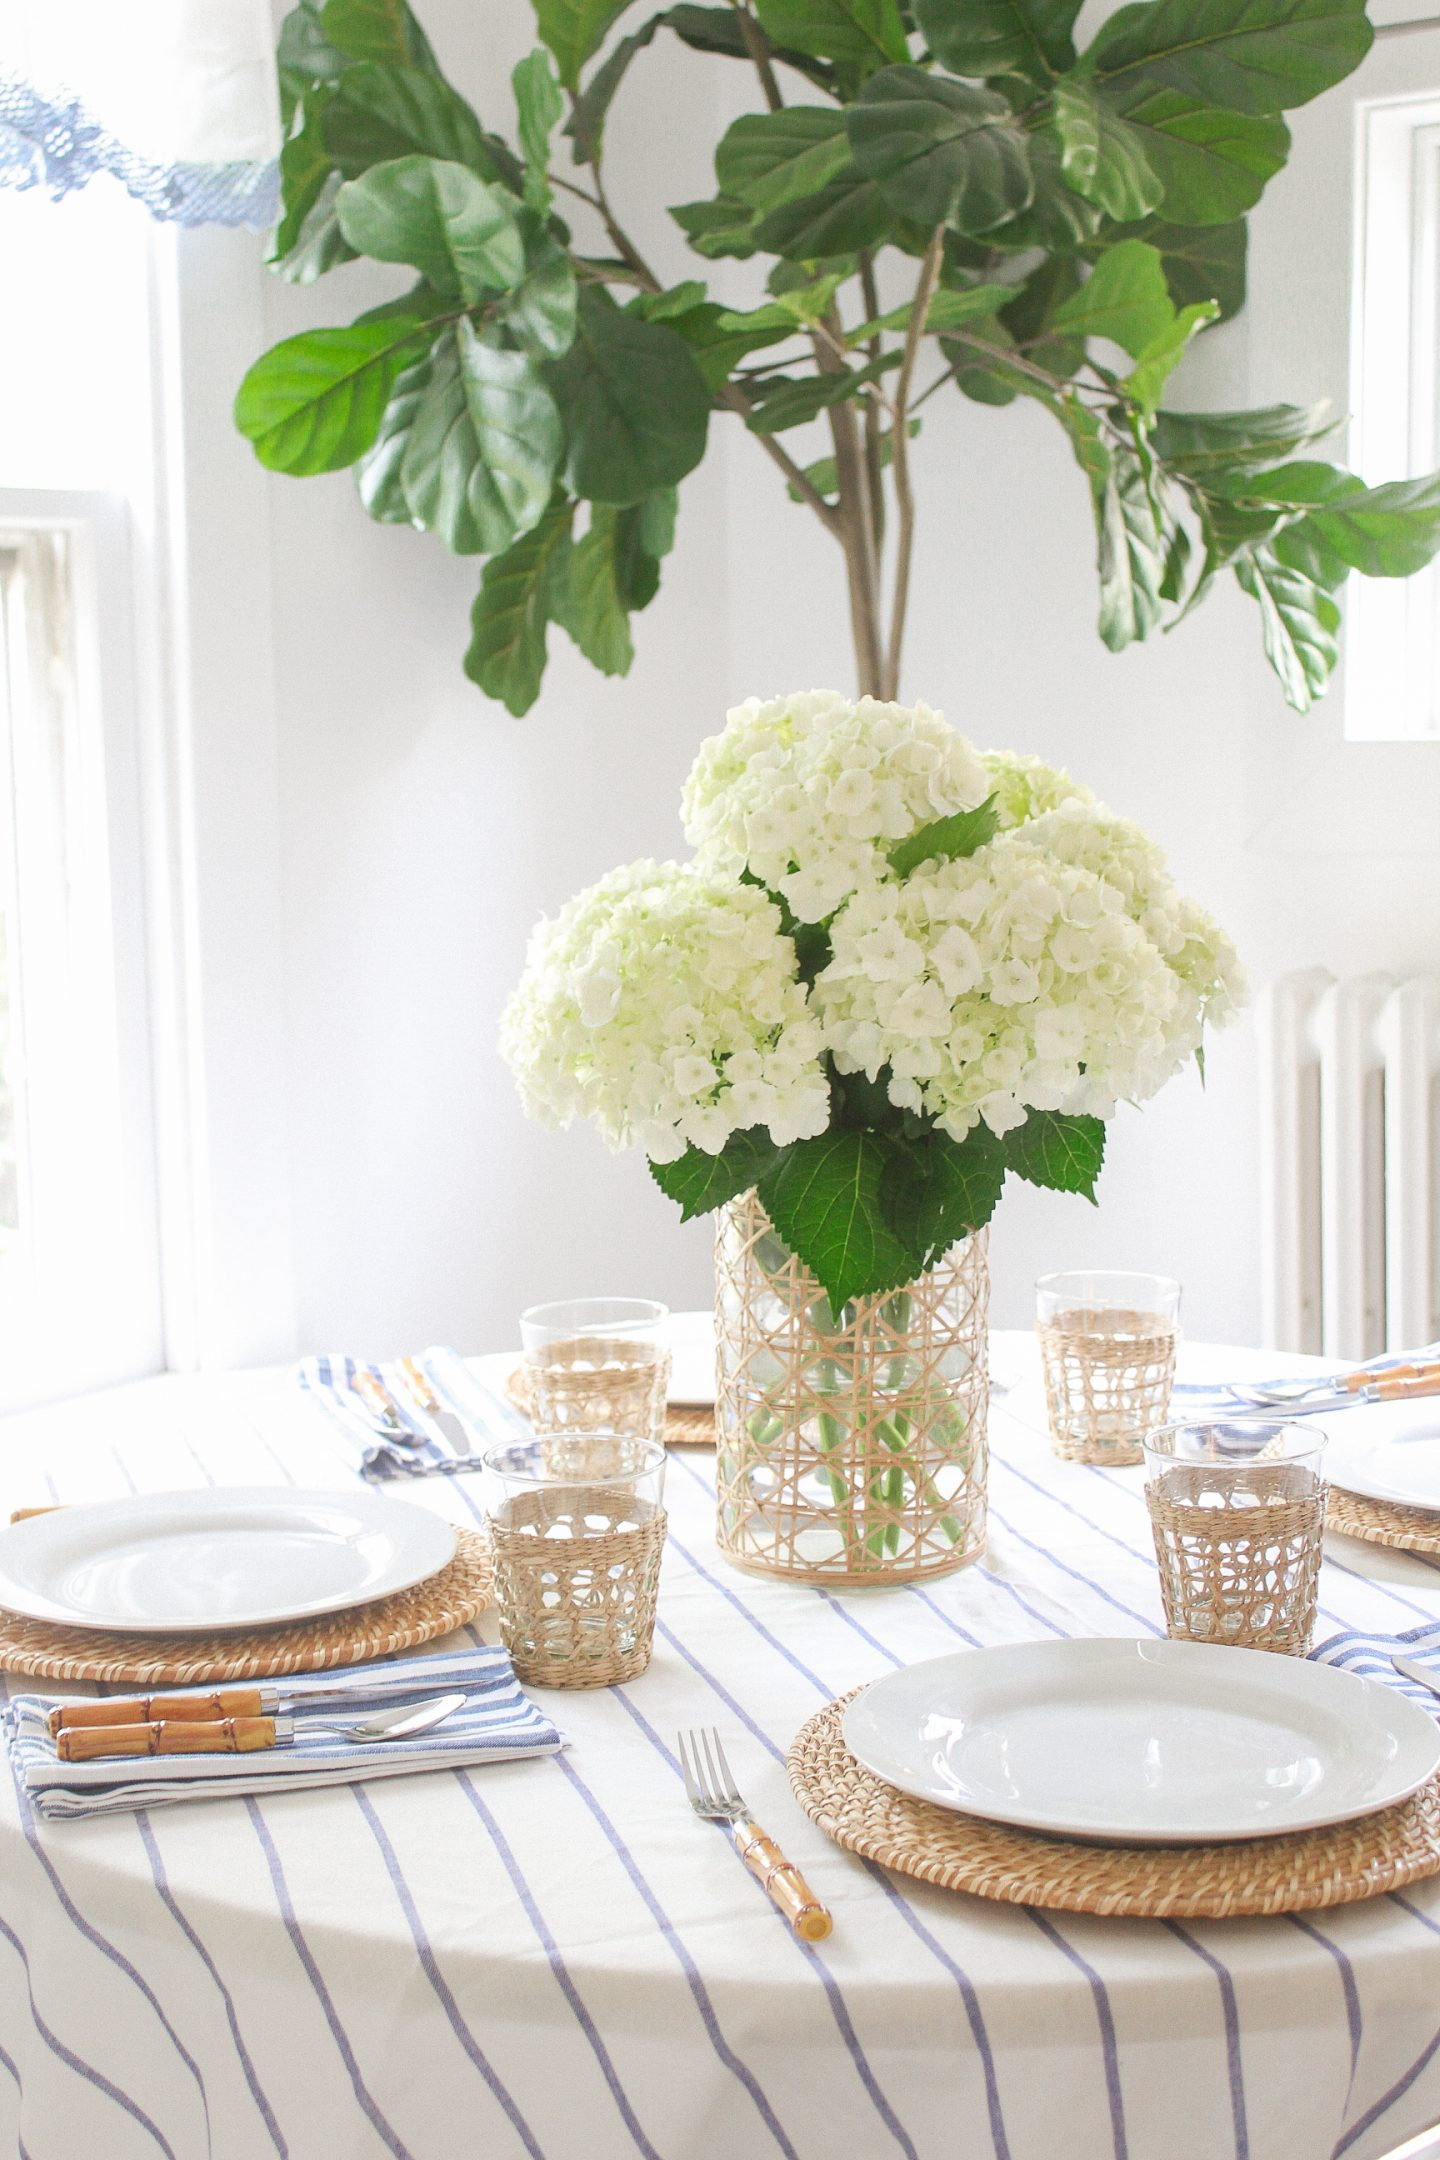 A Simple Blue and White Tablescape